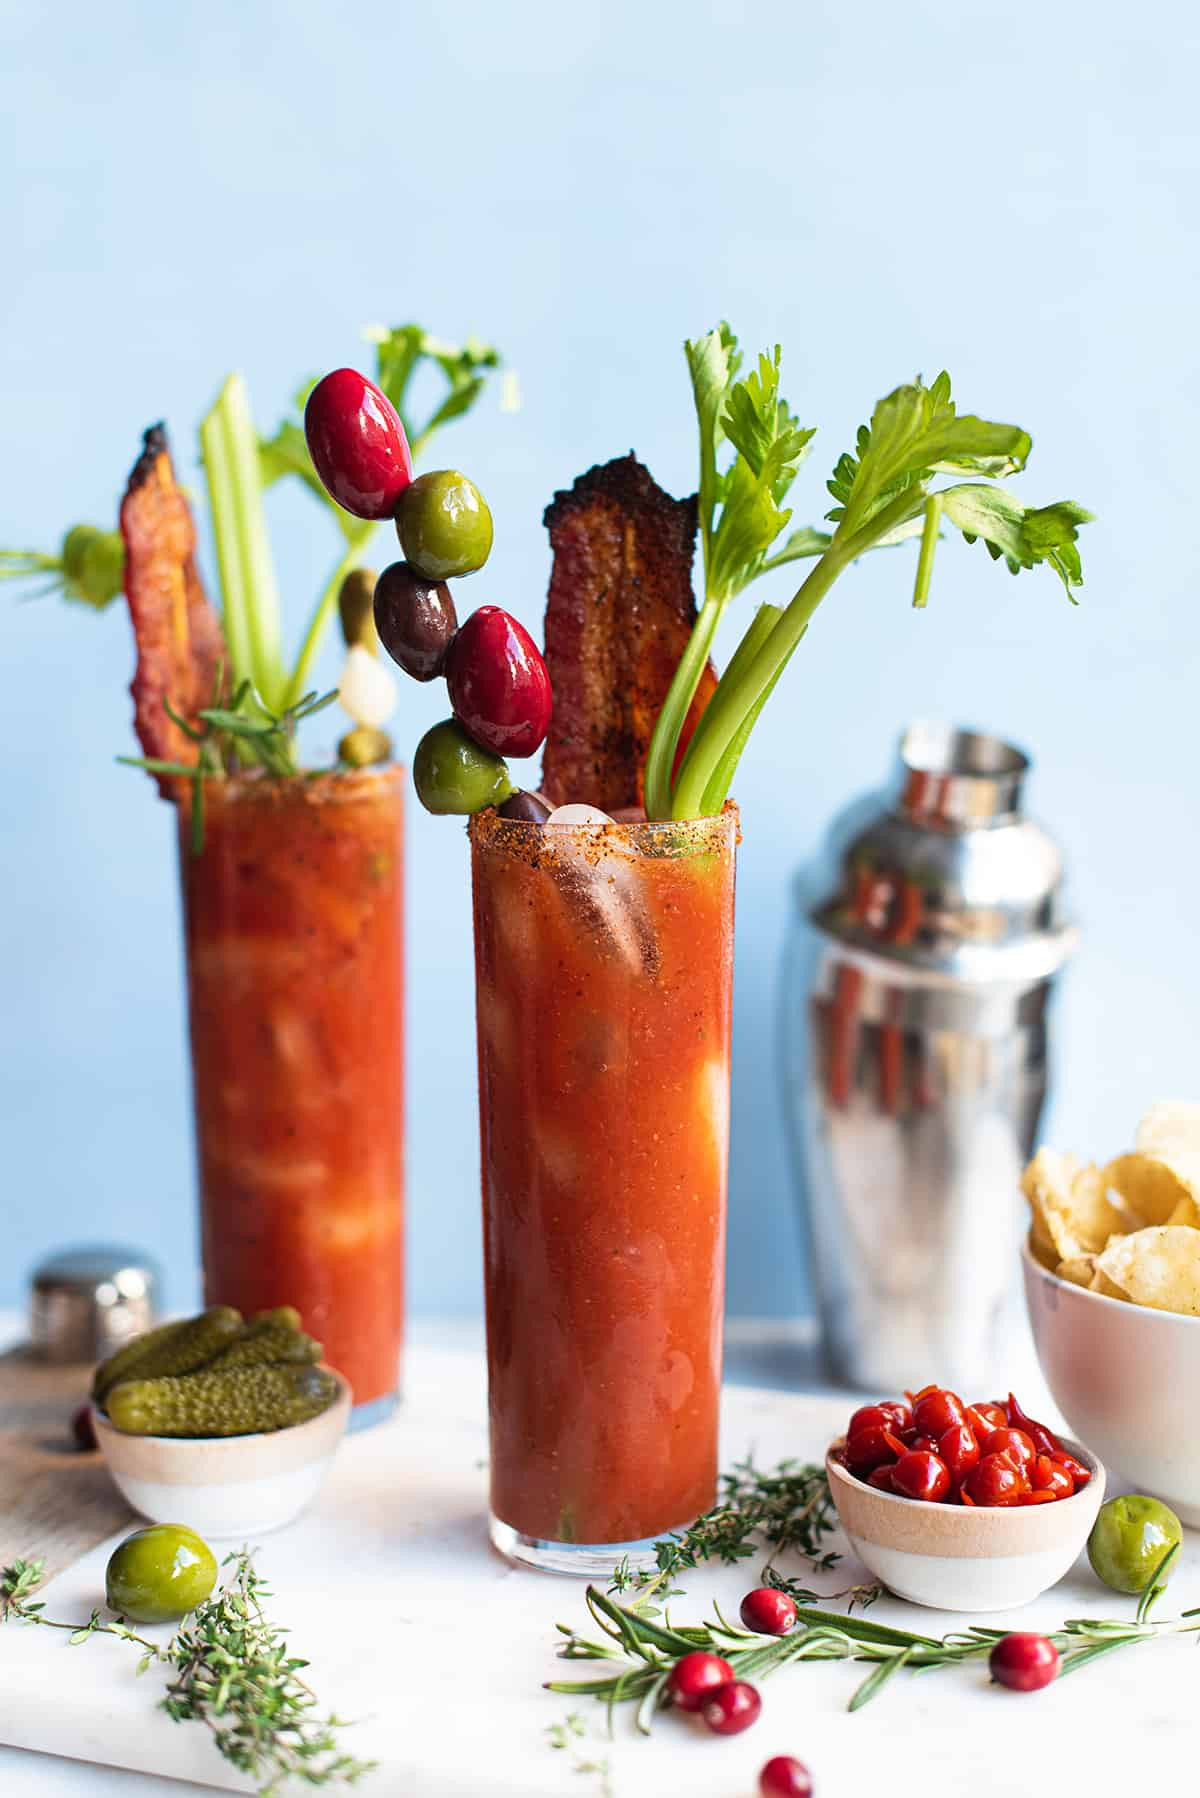 Bacon Bloody Mary in tall glass, garnished with celery, olives on blue background